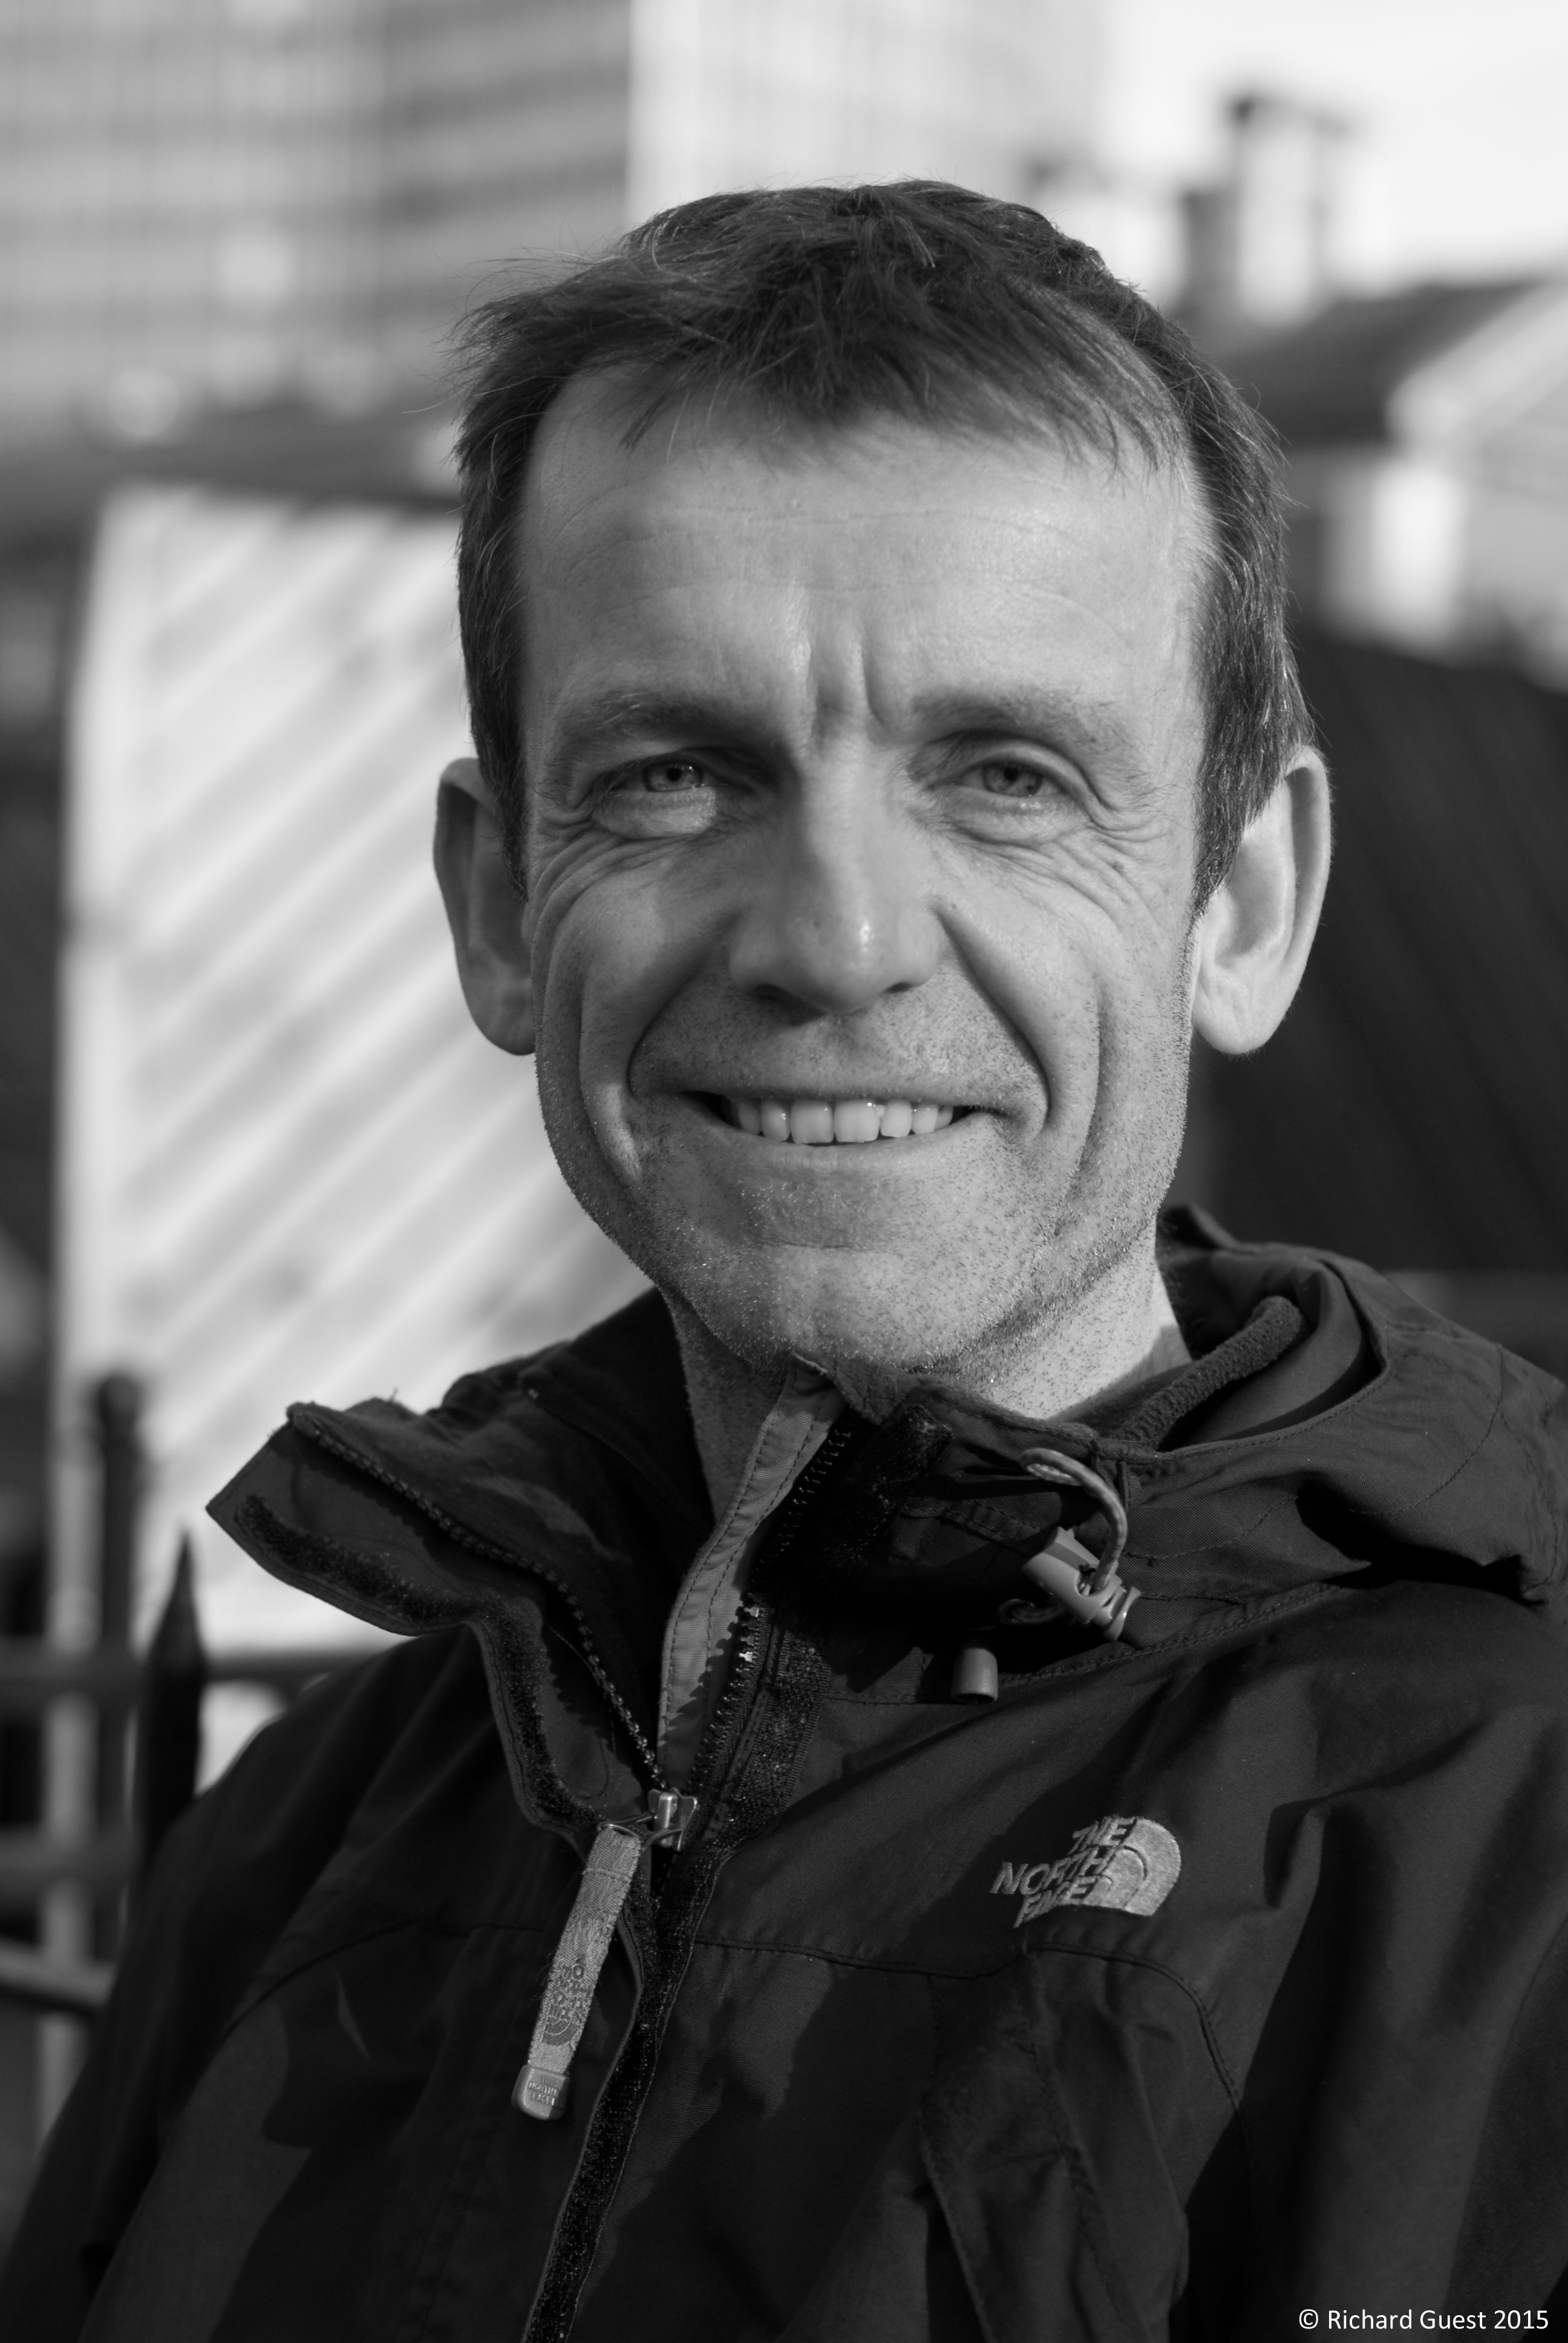 -Street Portrait (for and of Andy Shiel), 2015 - This was taken round the back of Tate Britain. I was just passing when I ran into Andy. We've known each other since 1986, when we were at art coll...